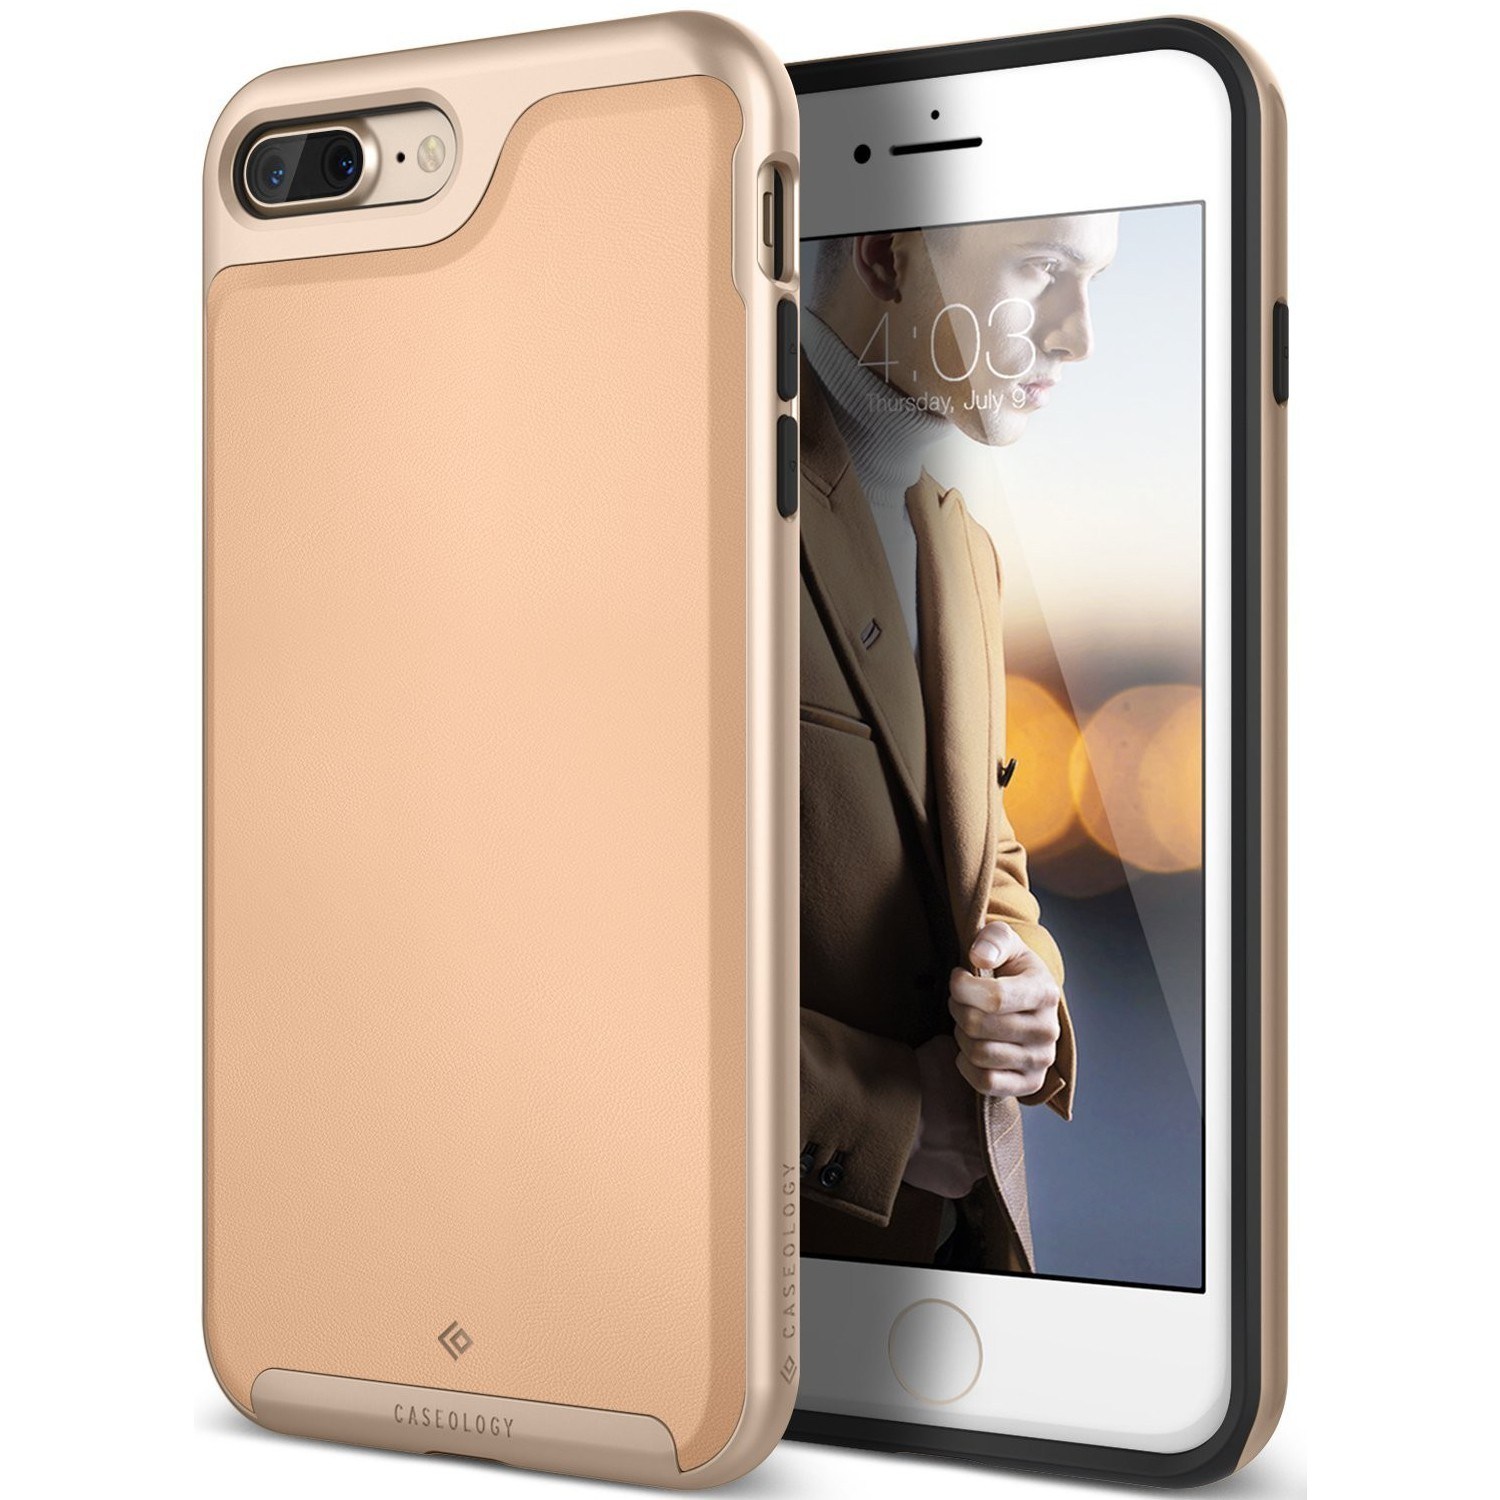 Ovitek Caseology Envoy Series za iPhone 7 Plus - leather beige